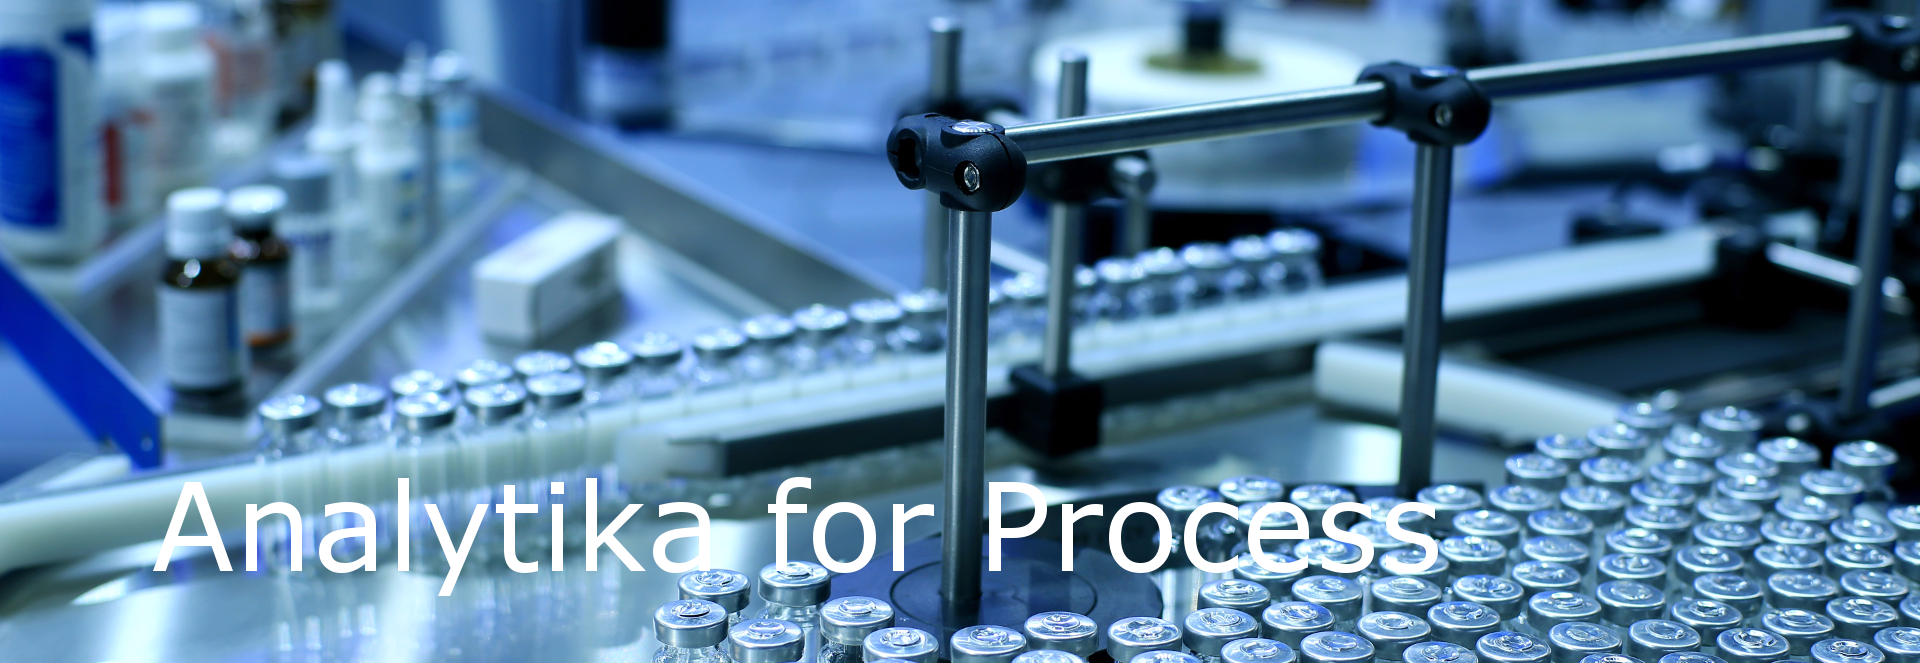 Analytika for Process